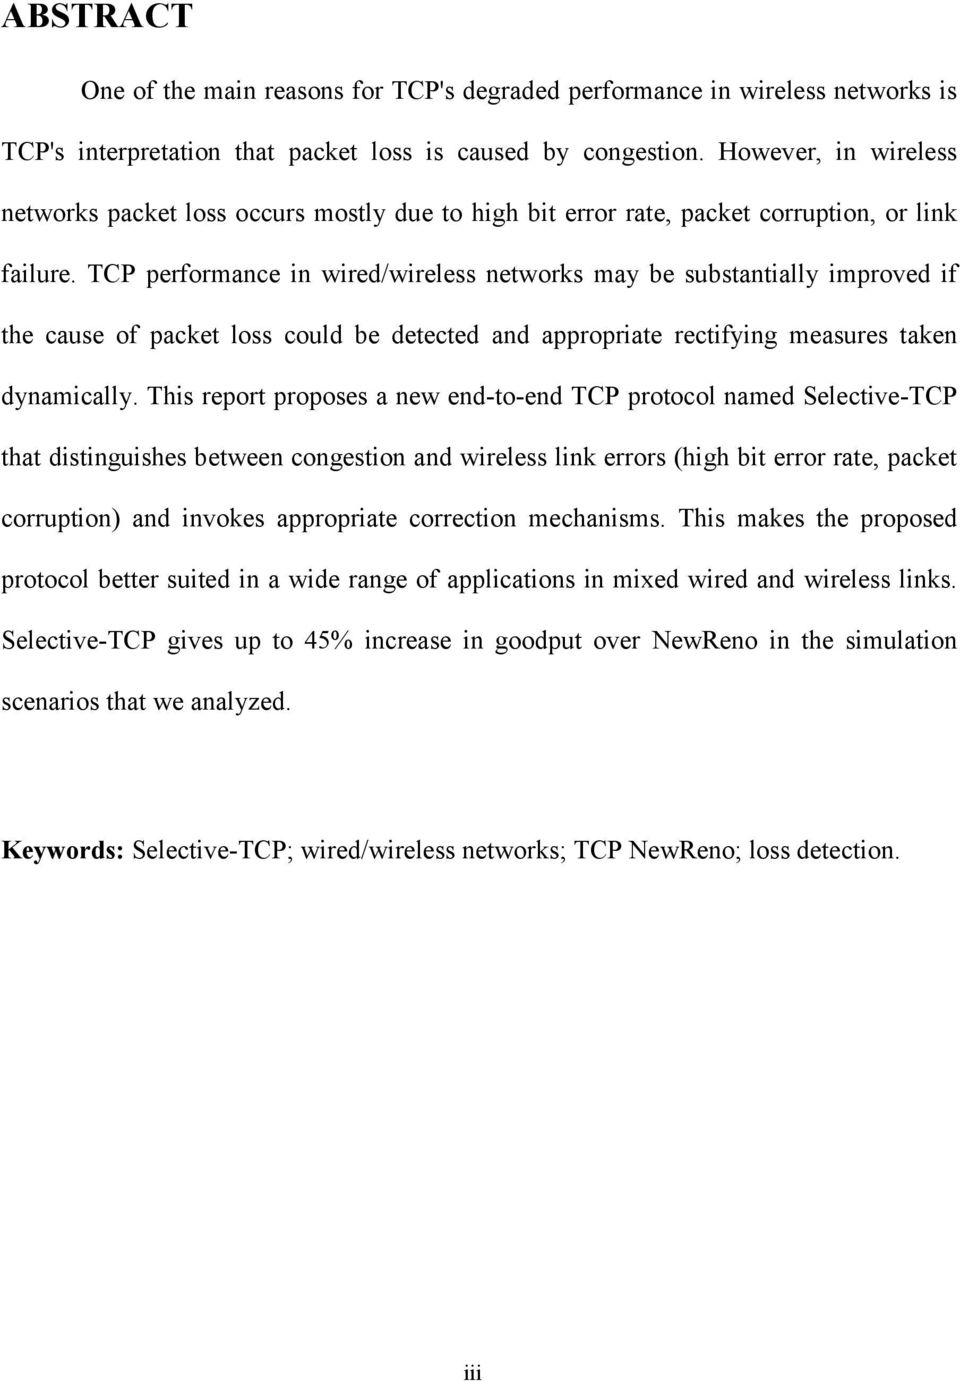 TCP performance in wired/wireless networks may be substantially improved if the cause of packet loss could be detected and appropriate rectifying measures taken dynamically.